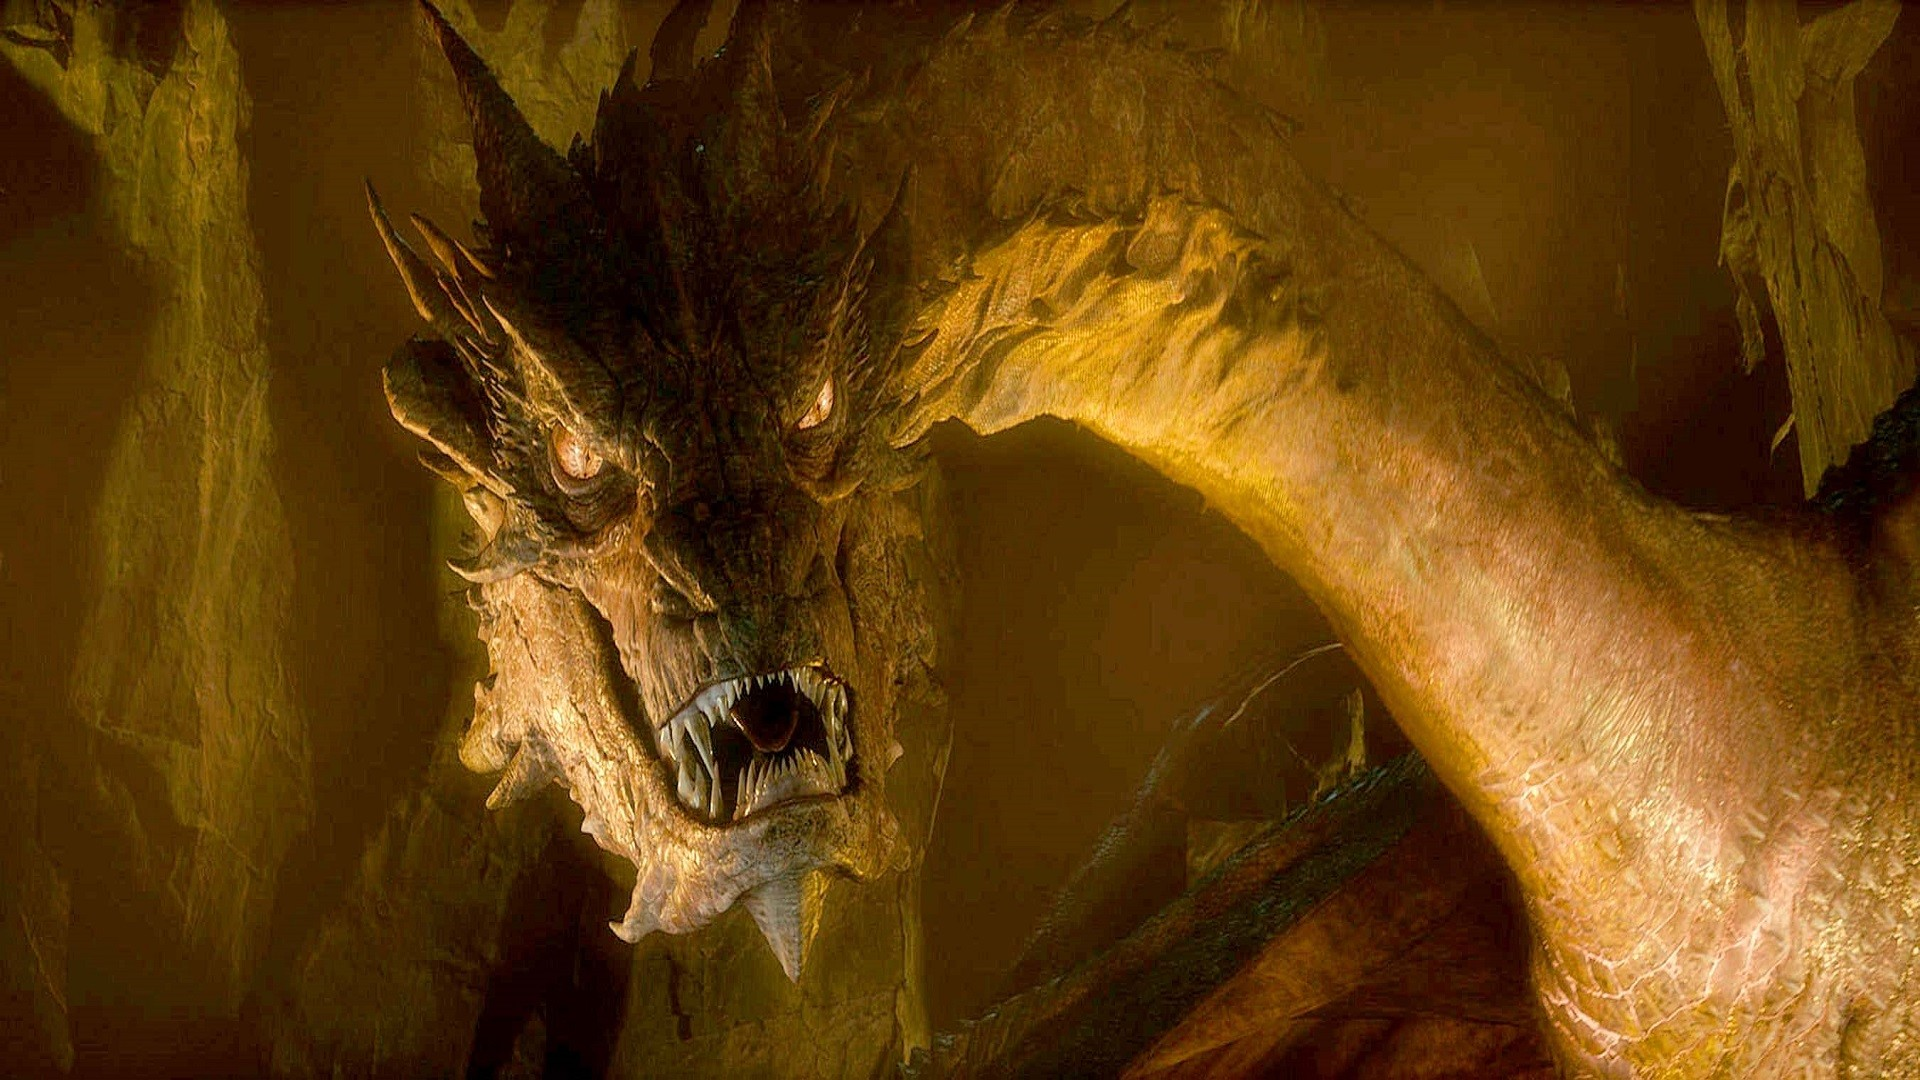 Image – The-Hobbit-The-Desolation-of-Smaug-Dragon-Wallpaper.jpg | Kristoff  and Anna's adventure series Wiki | FANDOM powered by Wikia